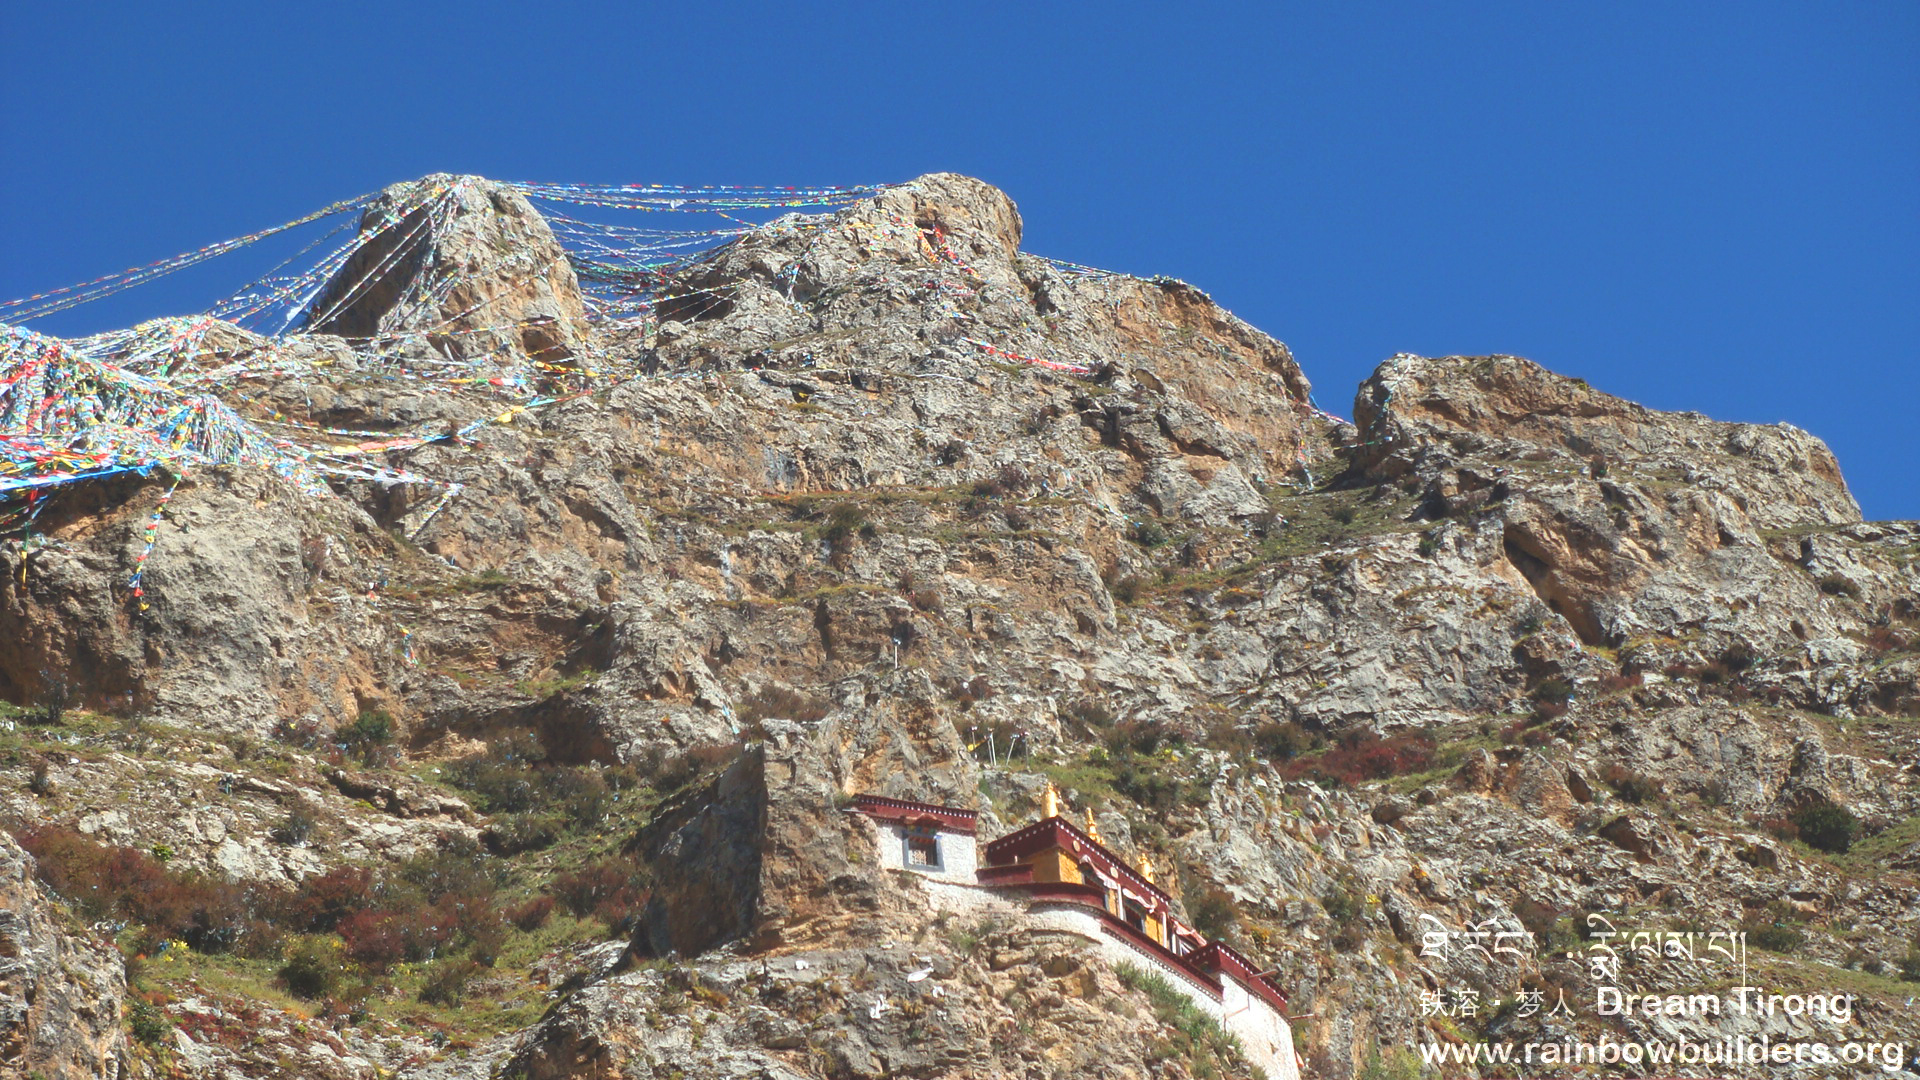 The prayer flags on the cliffs over the monastery spread the wishes of the pilgrims all over the world and beyond.